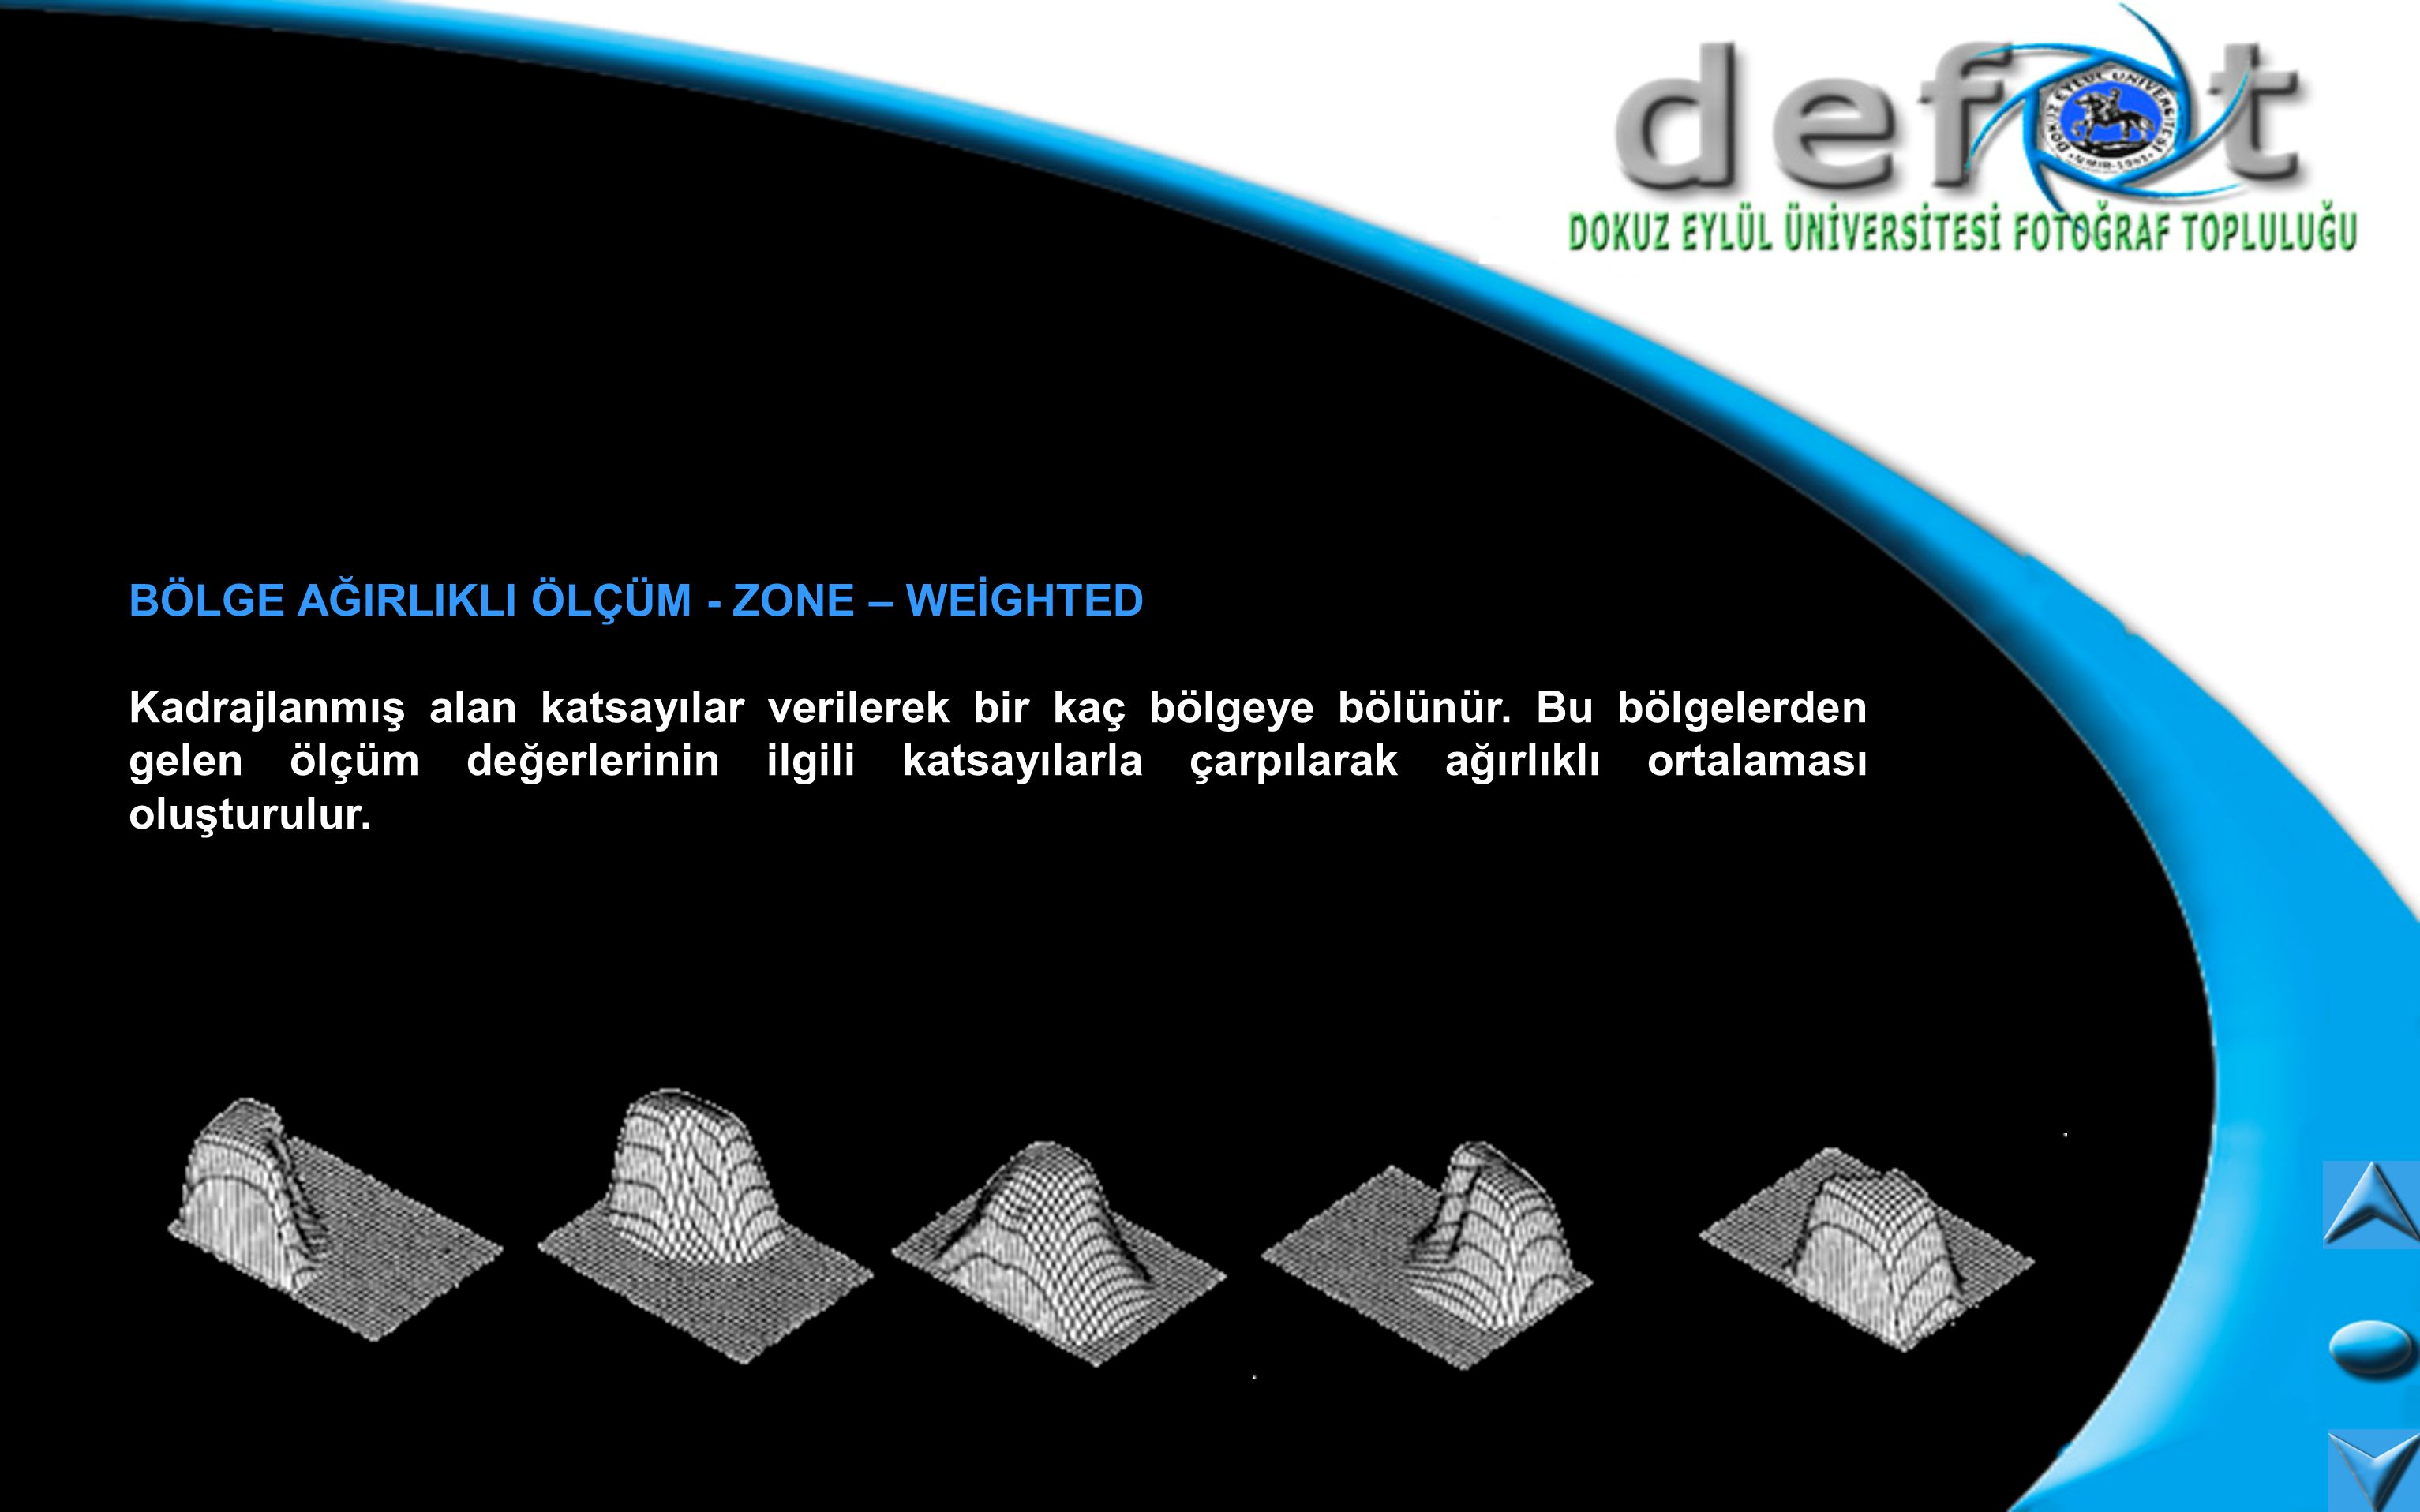 BÖLGE AĞIRLIKLI ÖLÇÜM - ZONE – WEİGHTED